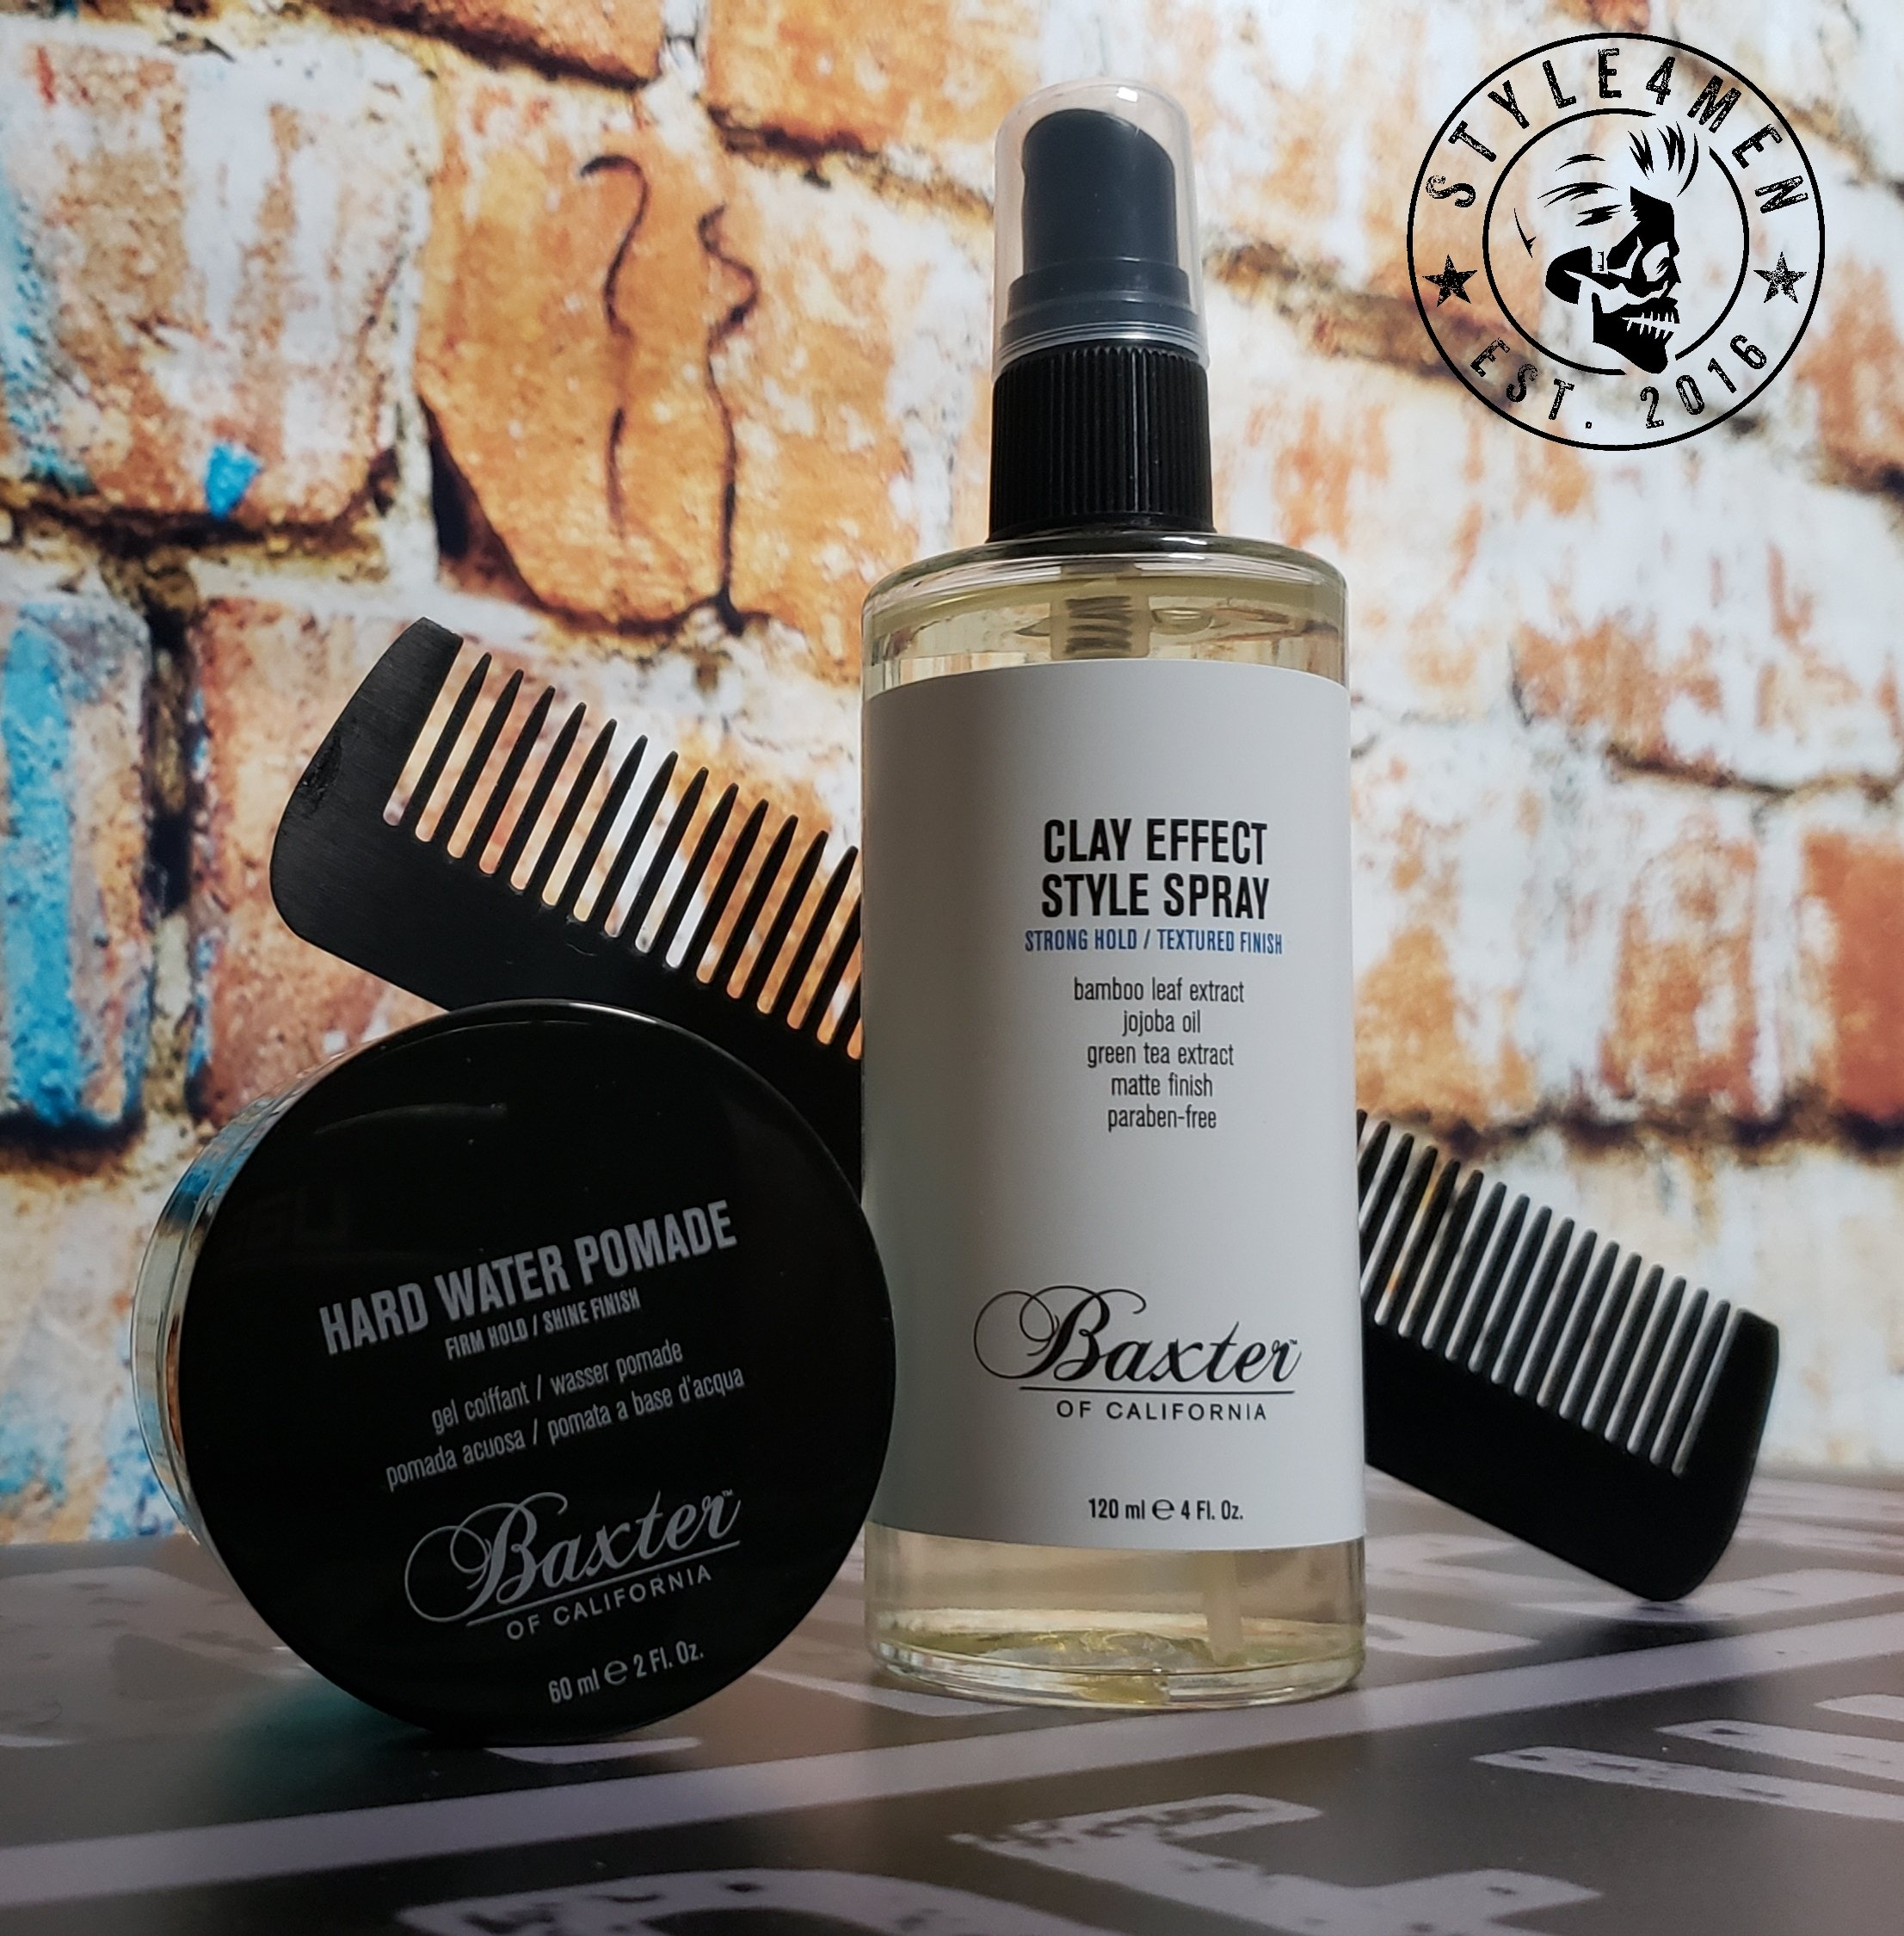 Baxter of California – Style Spray and Hard Water Pomade